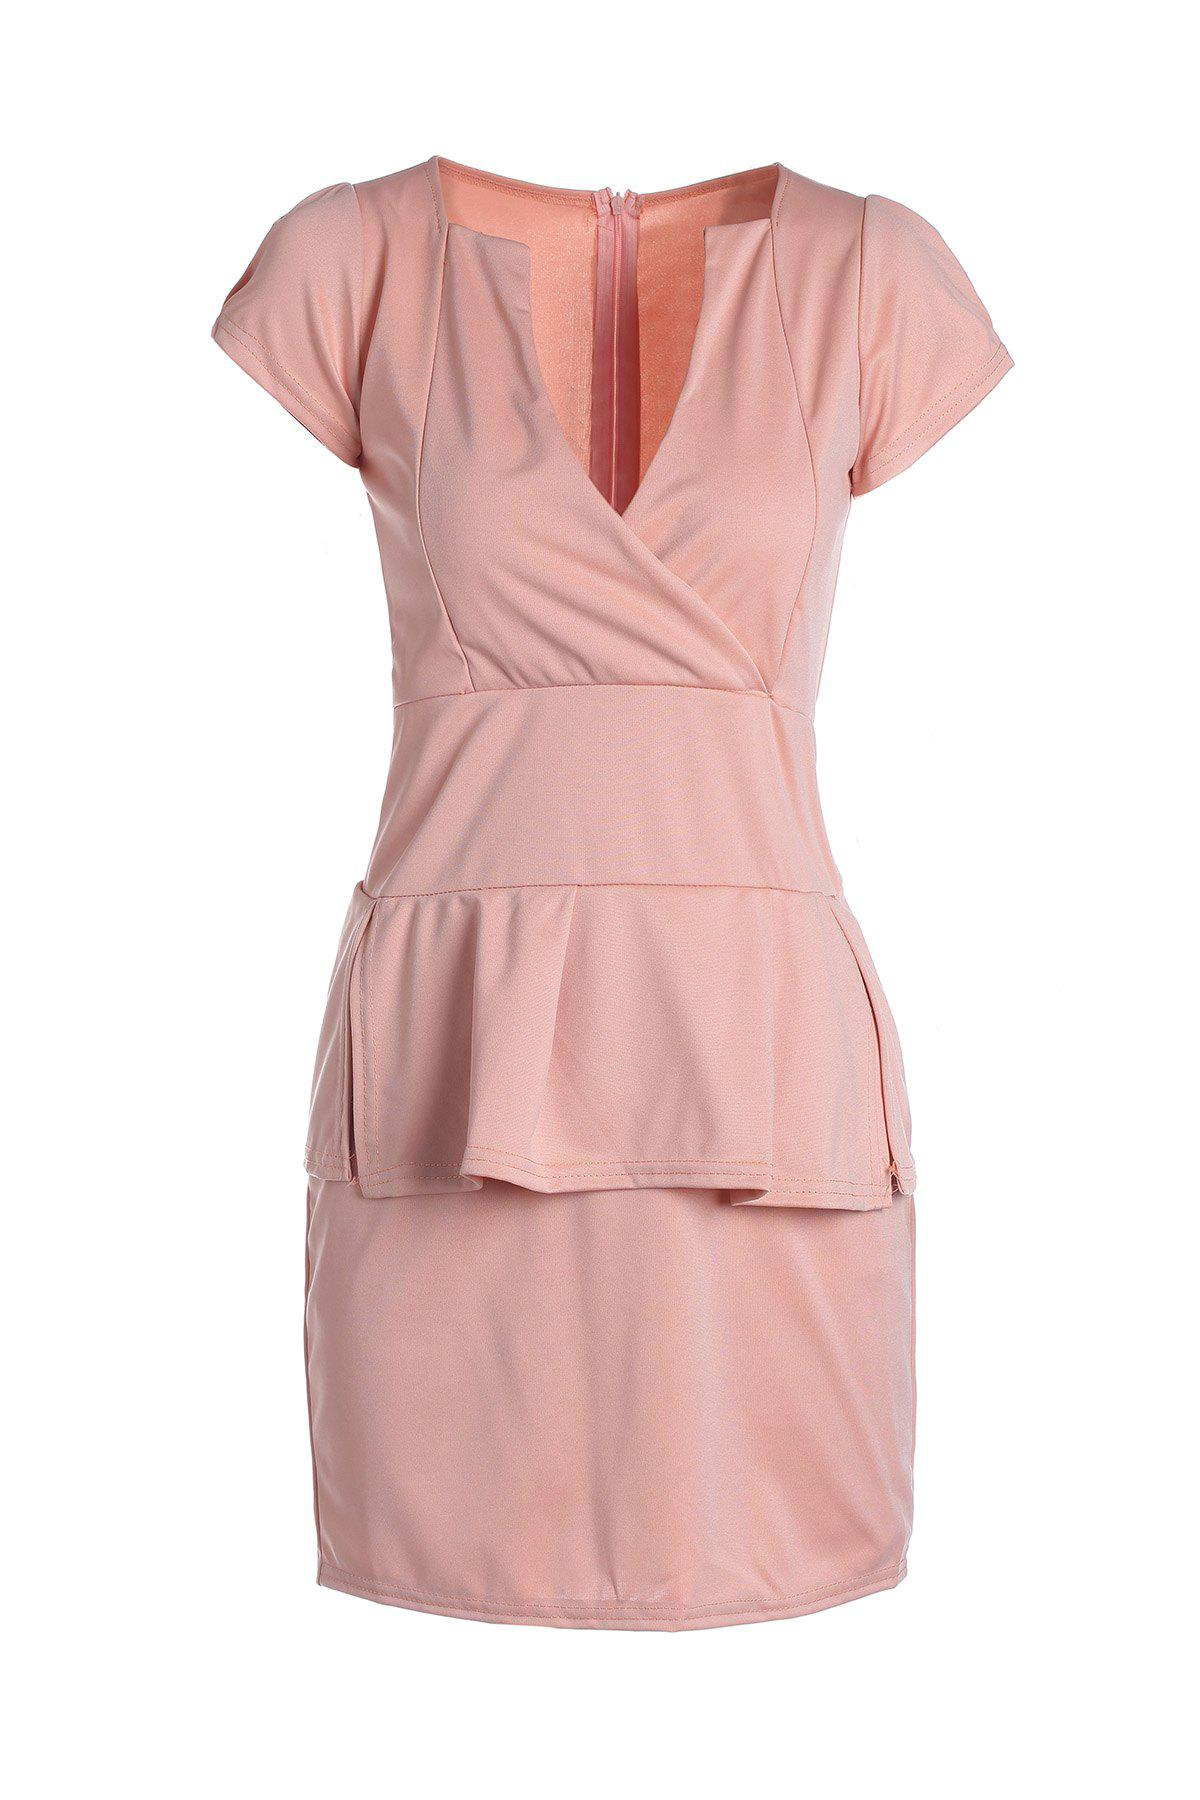 Women's Charming Plunging Neck Fold Short Sleeve Solid Color Dress